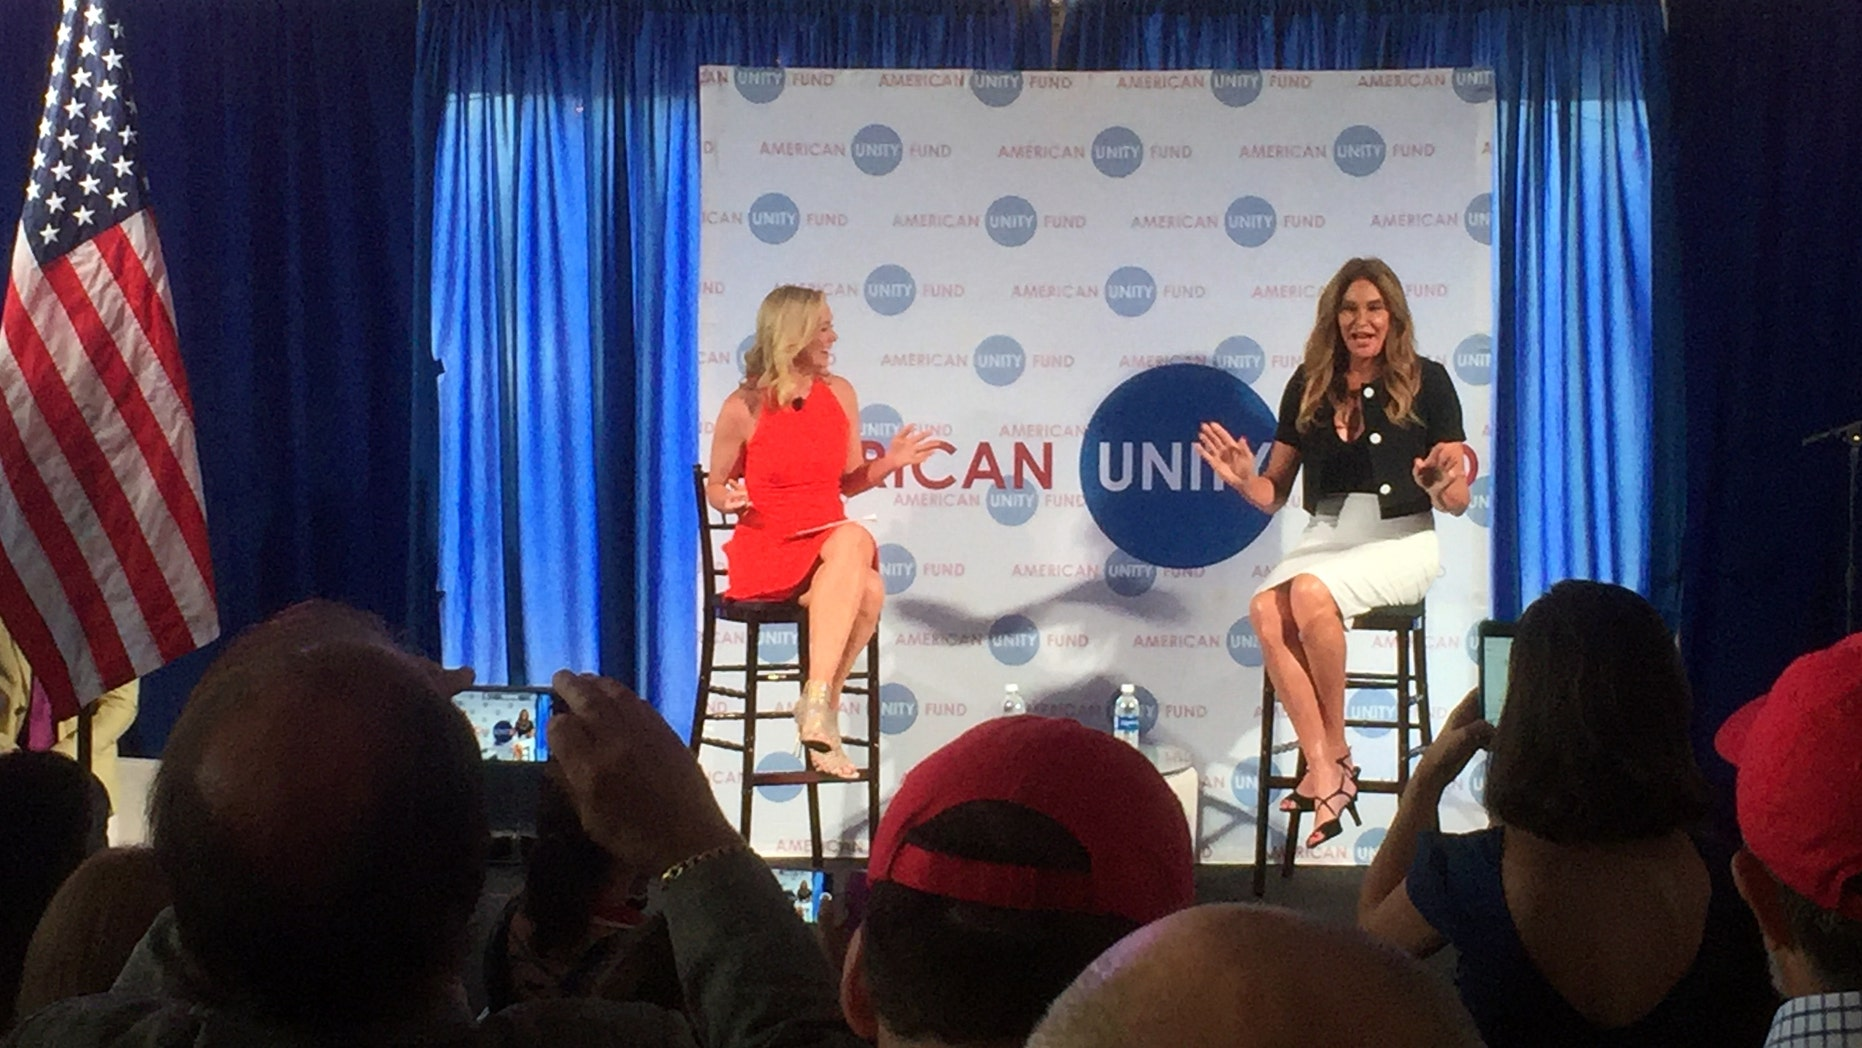 July 20, 2016: Caitlyn Jenner, right, speaks at an American Unity Fund brunch at the Rock and Roll Hall of Fame in Cleveland on the sidelines of the Republican National Convention.